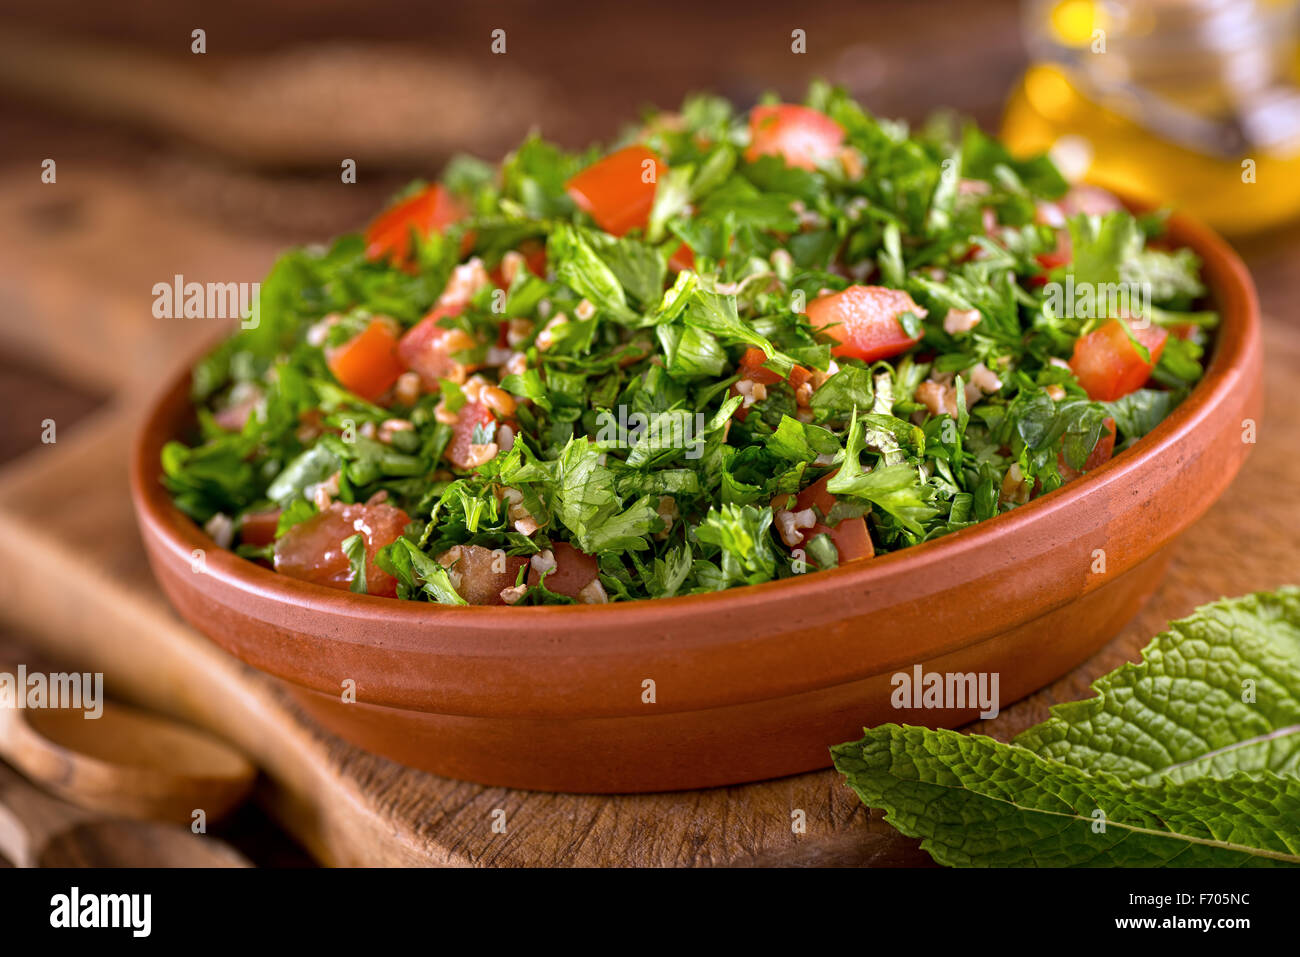 A bowl of delicious fresh tabouli with parsley, mint, tomato, onion, olive oil, lemon juice, and bulgar wheat. - Stock Image